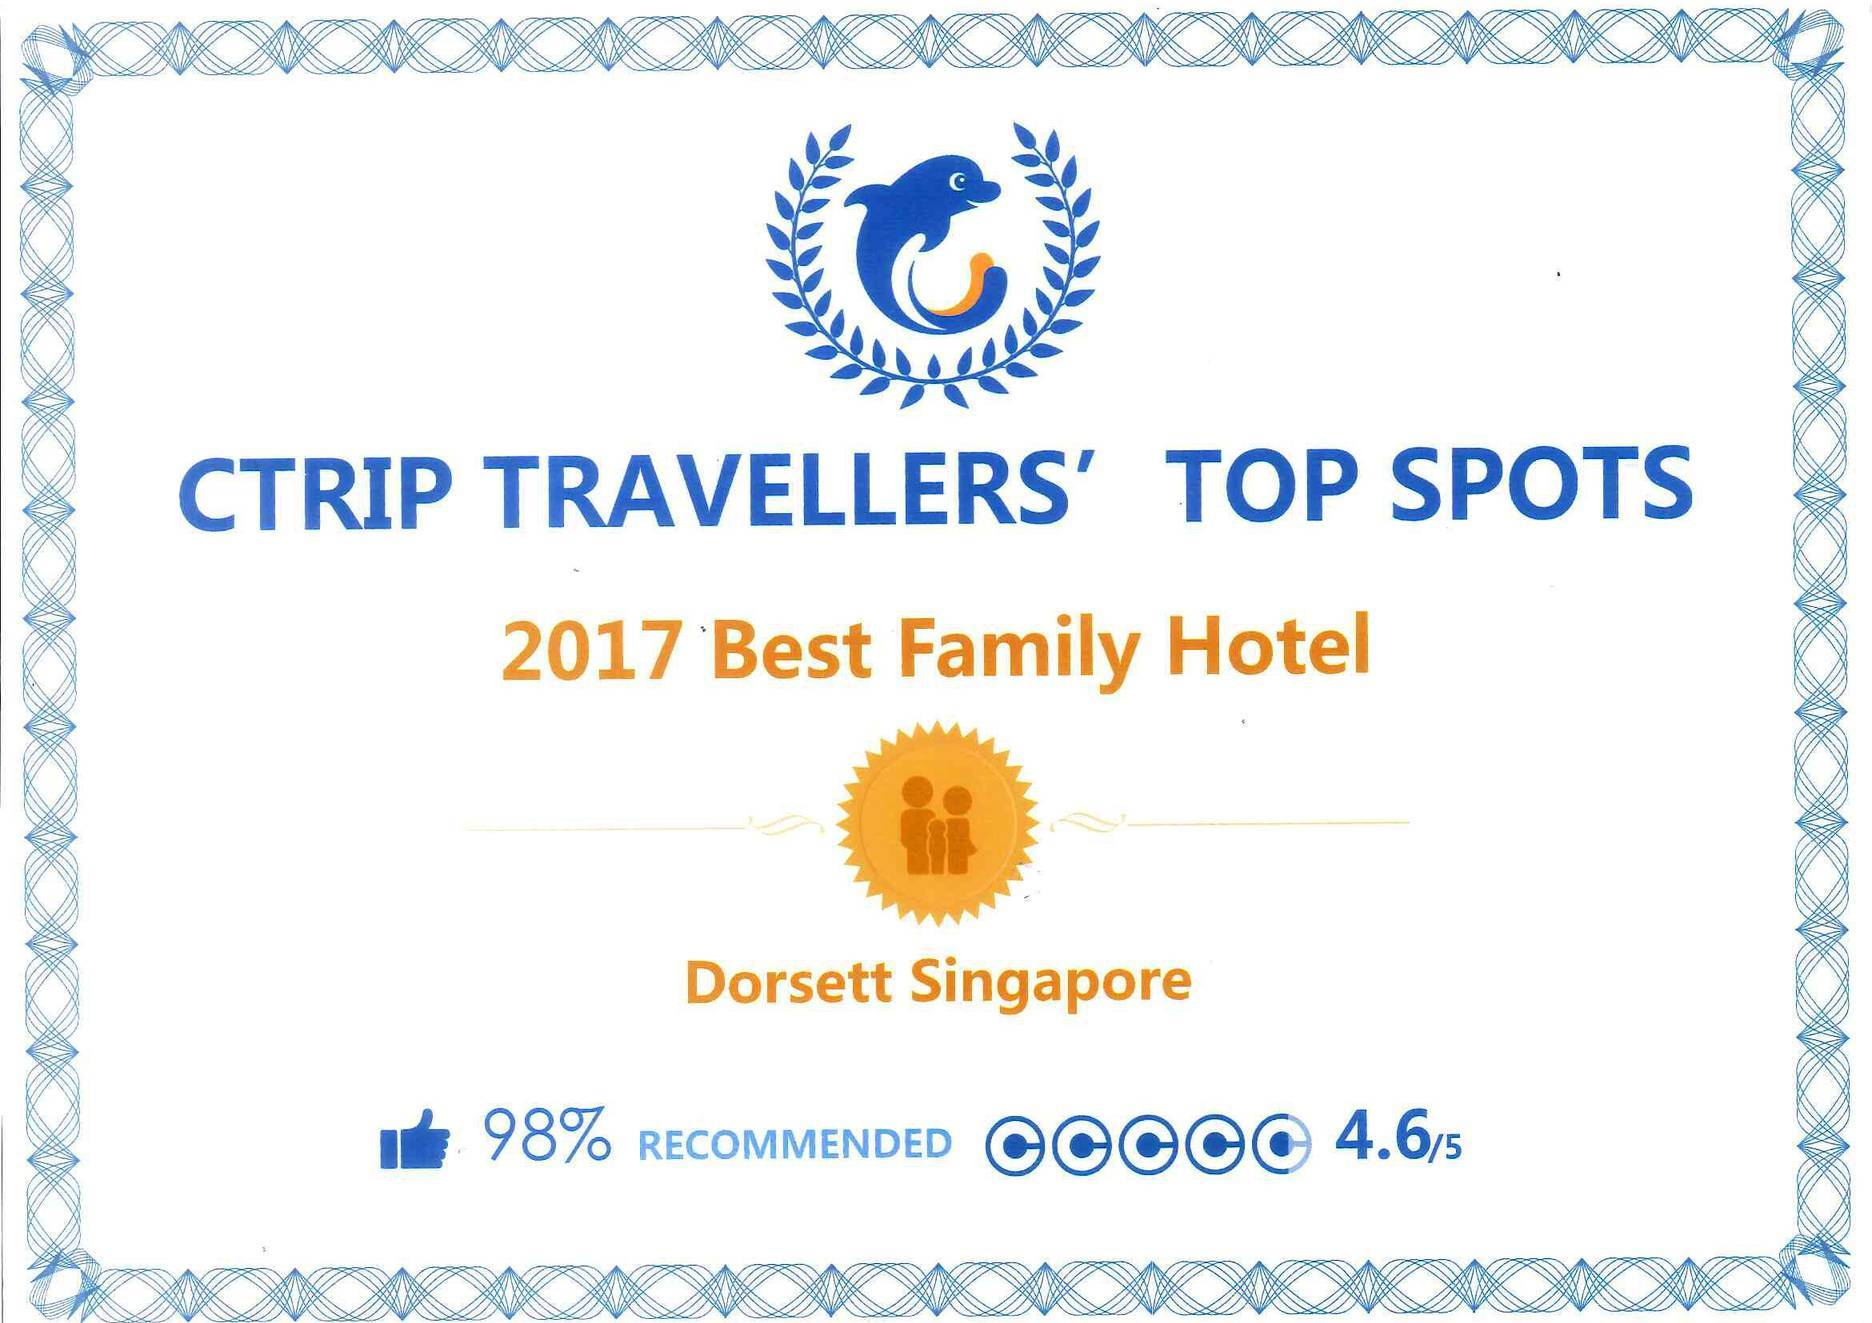 2017 Best Family Hotel – Ctrip Travellers' Top Spots